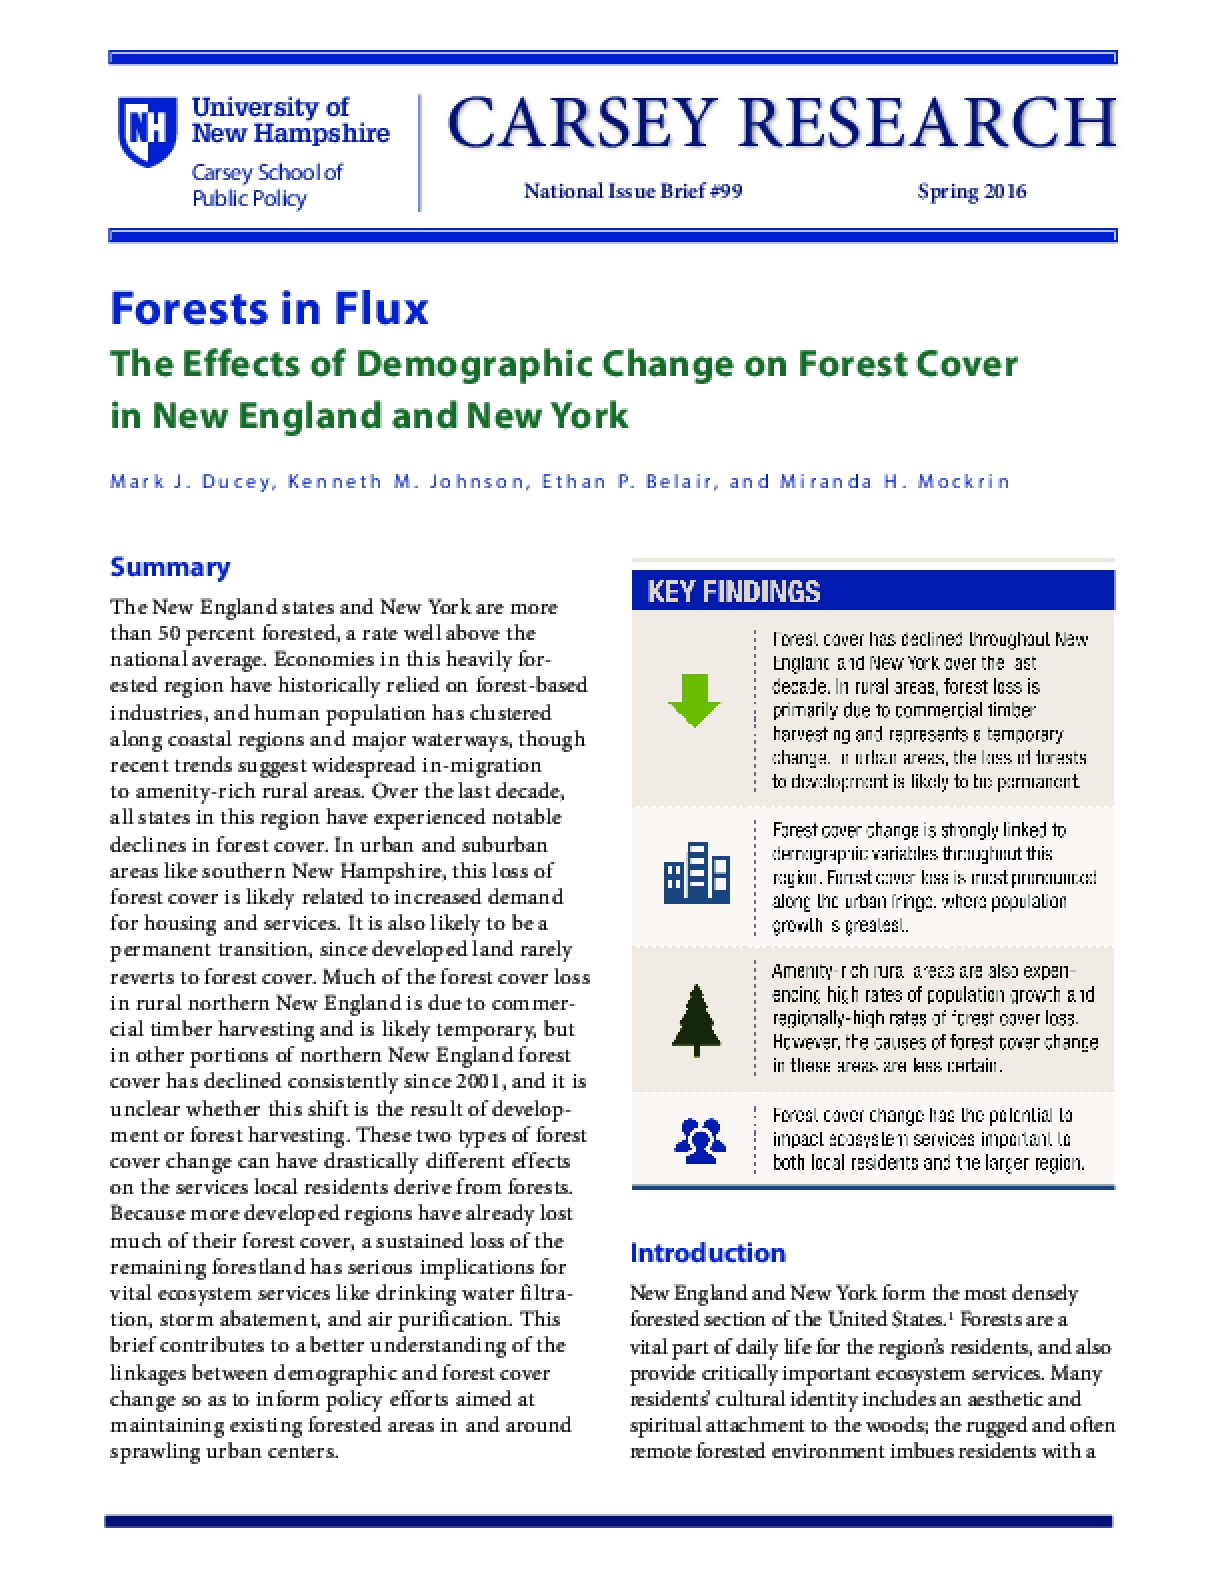 Forests in Flux: The Effects of Demographic Change on Forest Cover in New England and New York